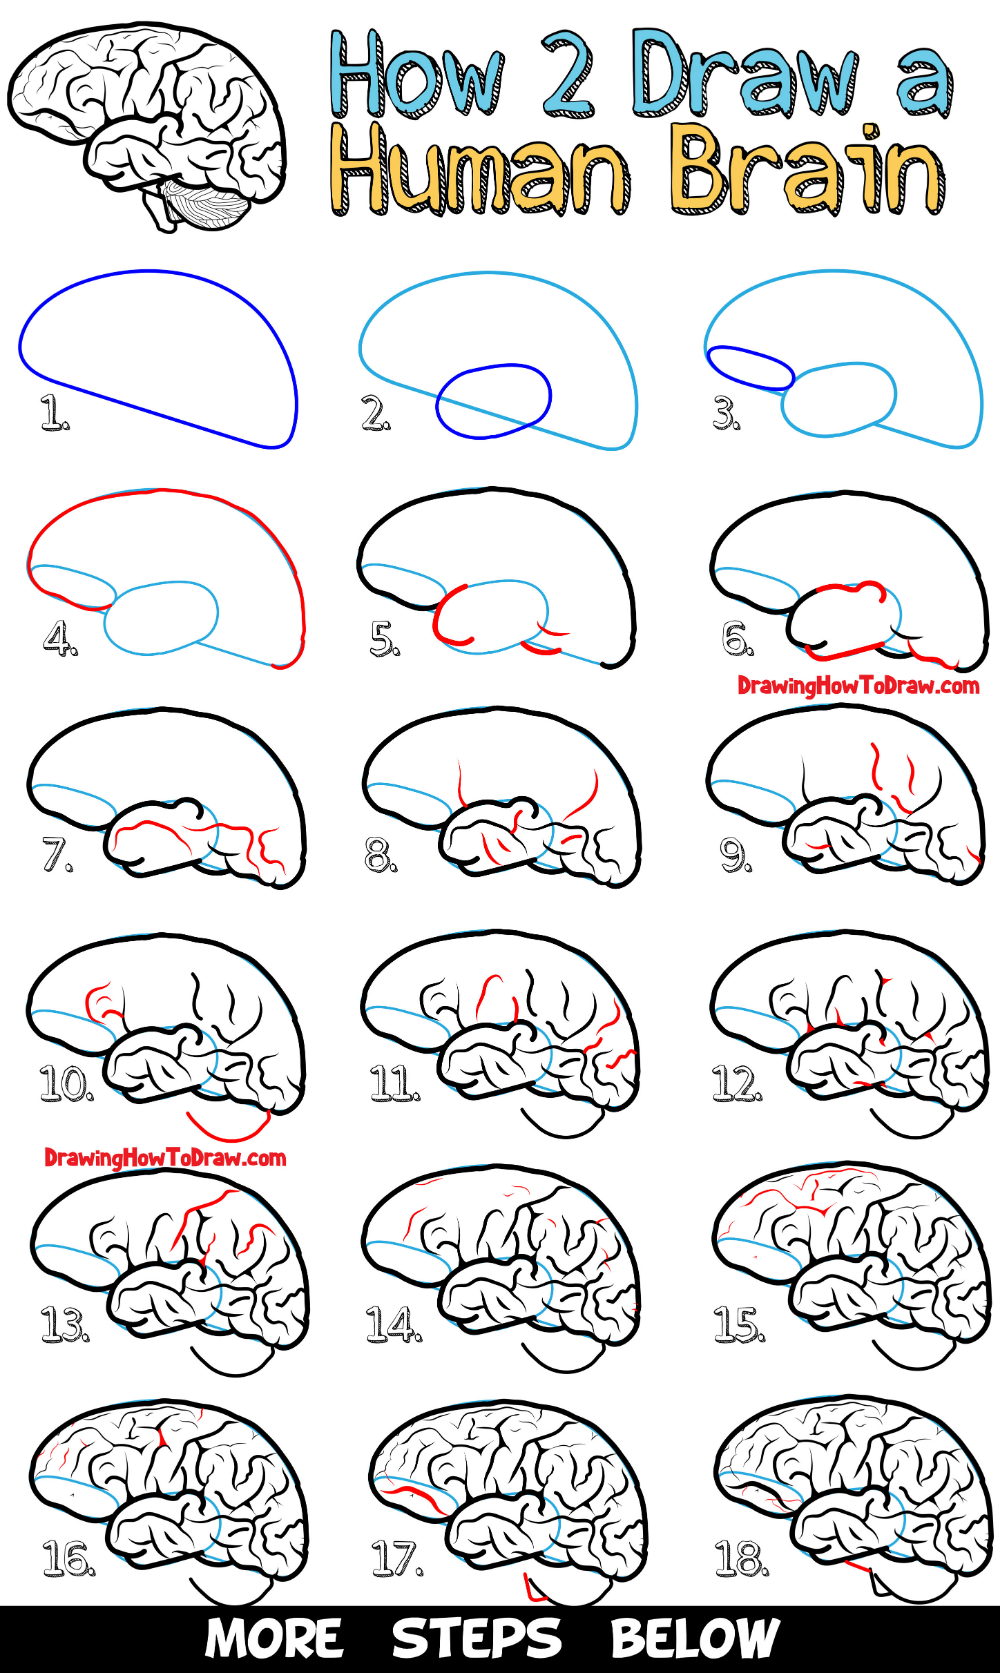 How to Draw a Human Brain - Easy Steps Drawing Lesson for Beginners - How to Draw Step by Step Drawing Tutorials